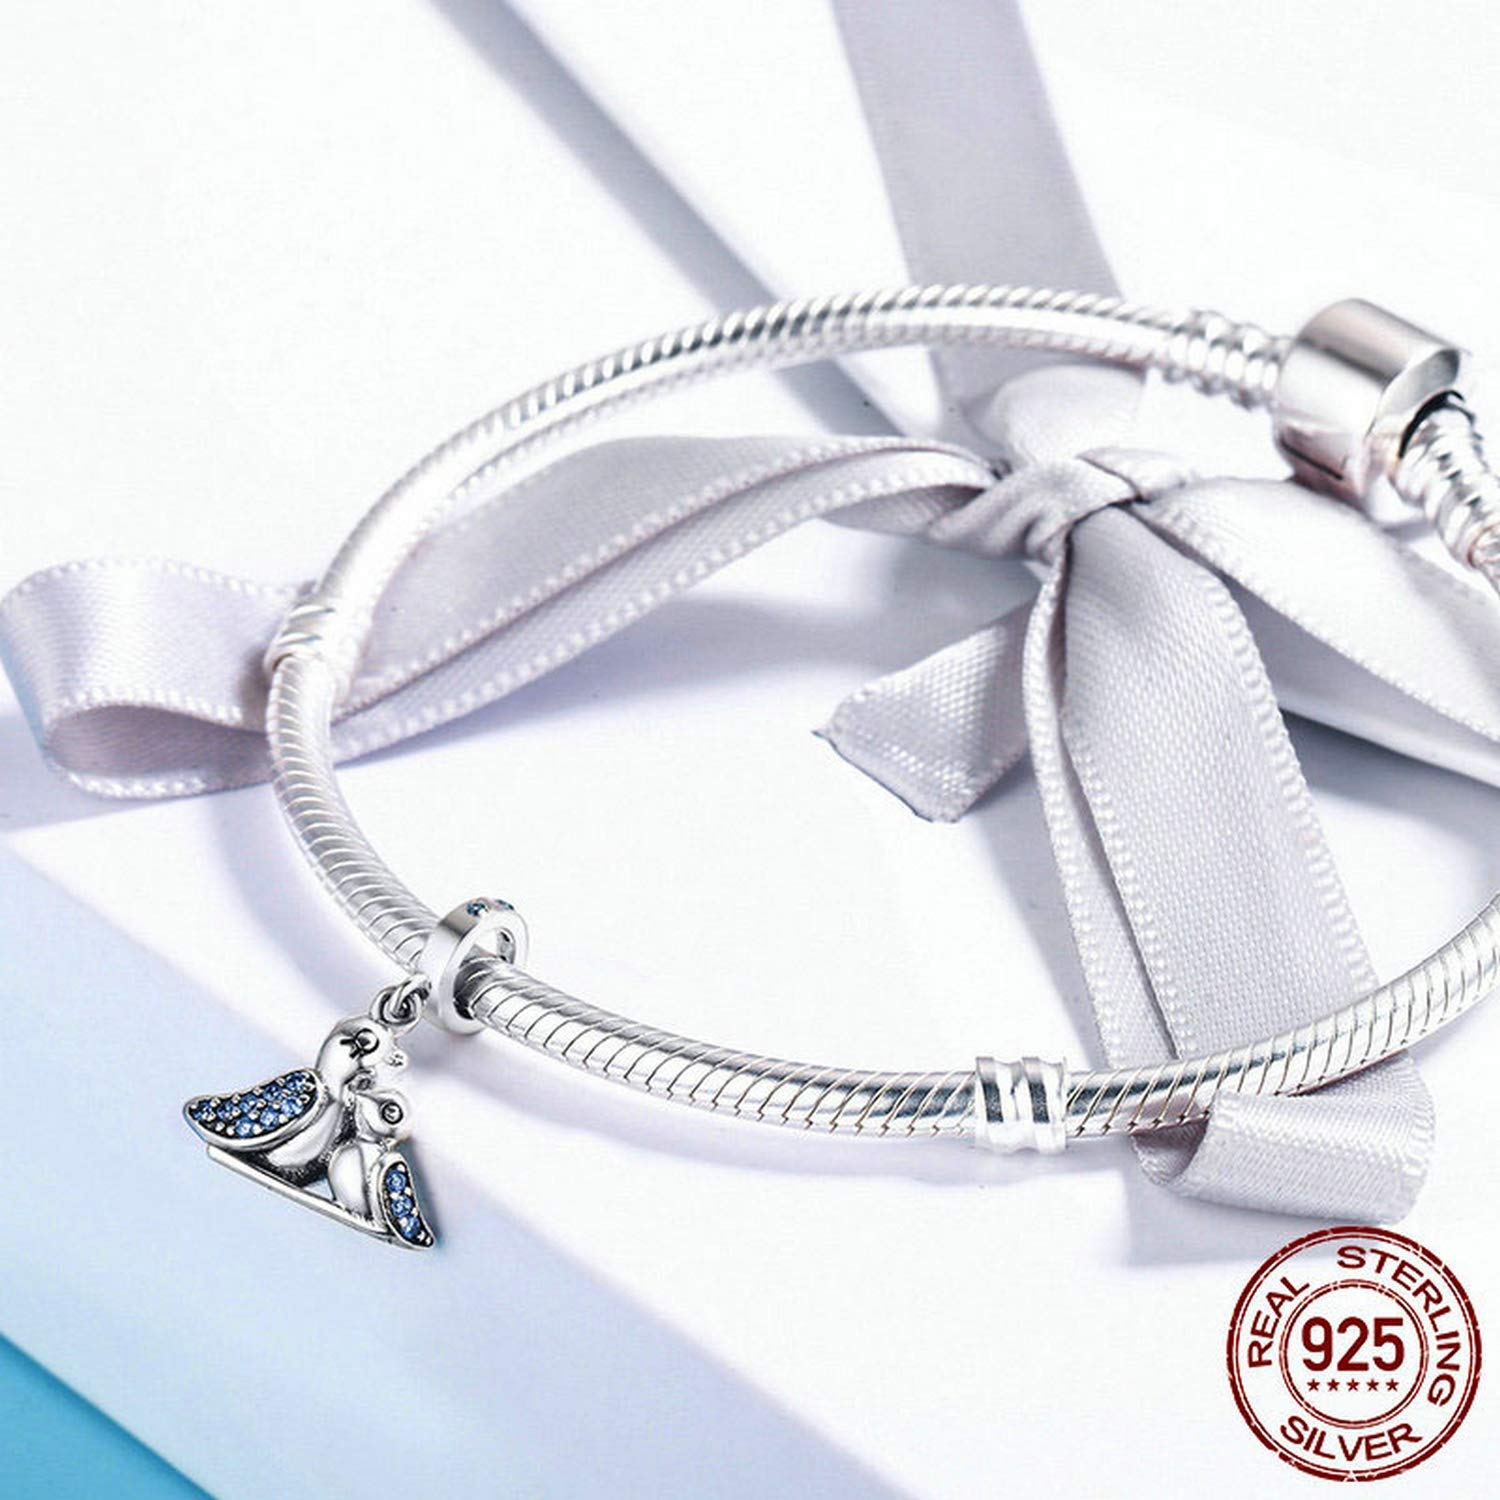 Evereena Silver Beads Bracelet for Girls Cute Bird Dependency Charm Womens Jewelry